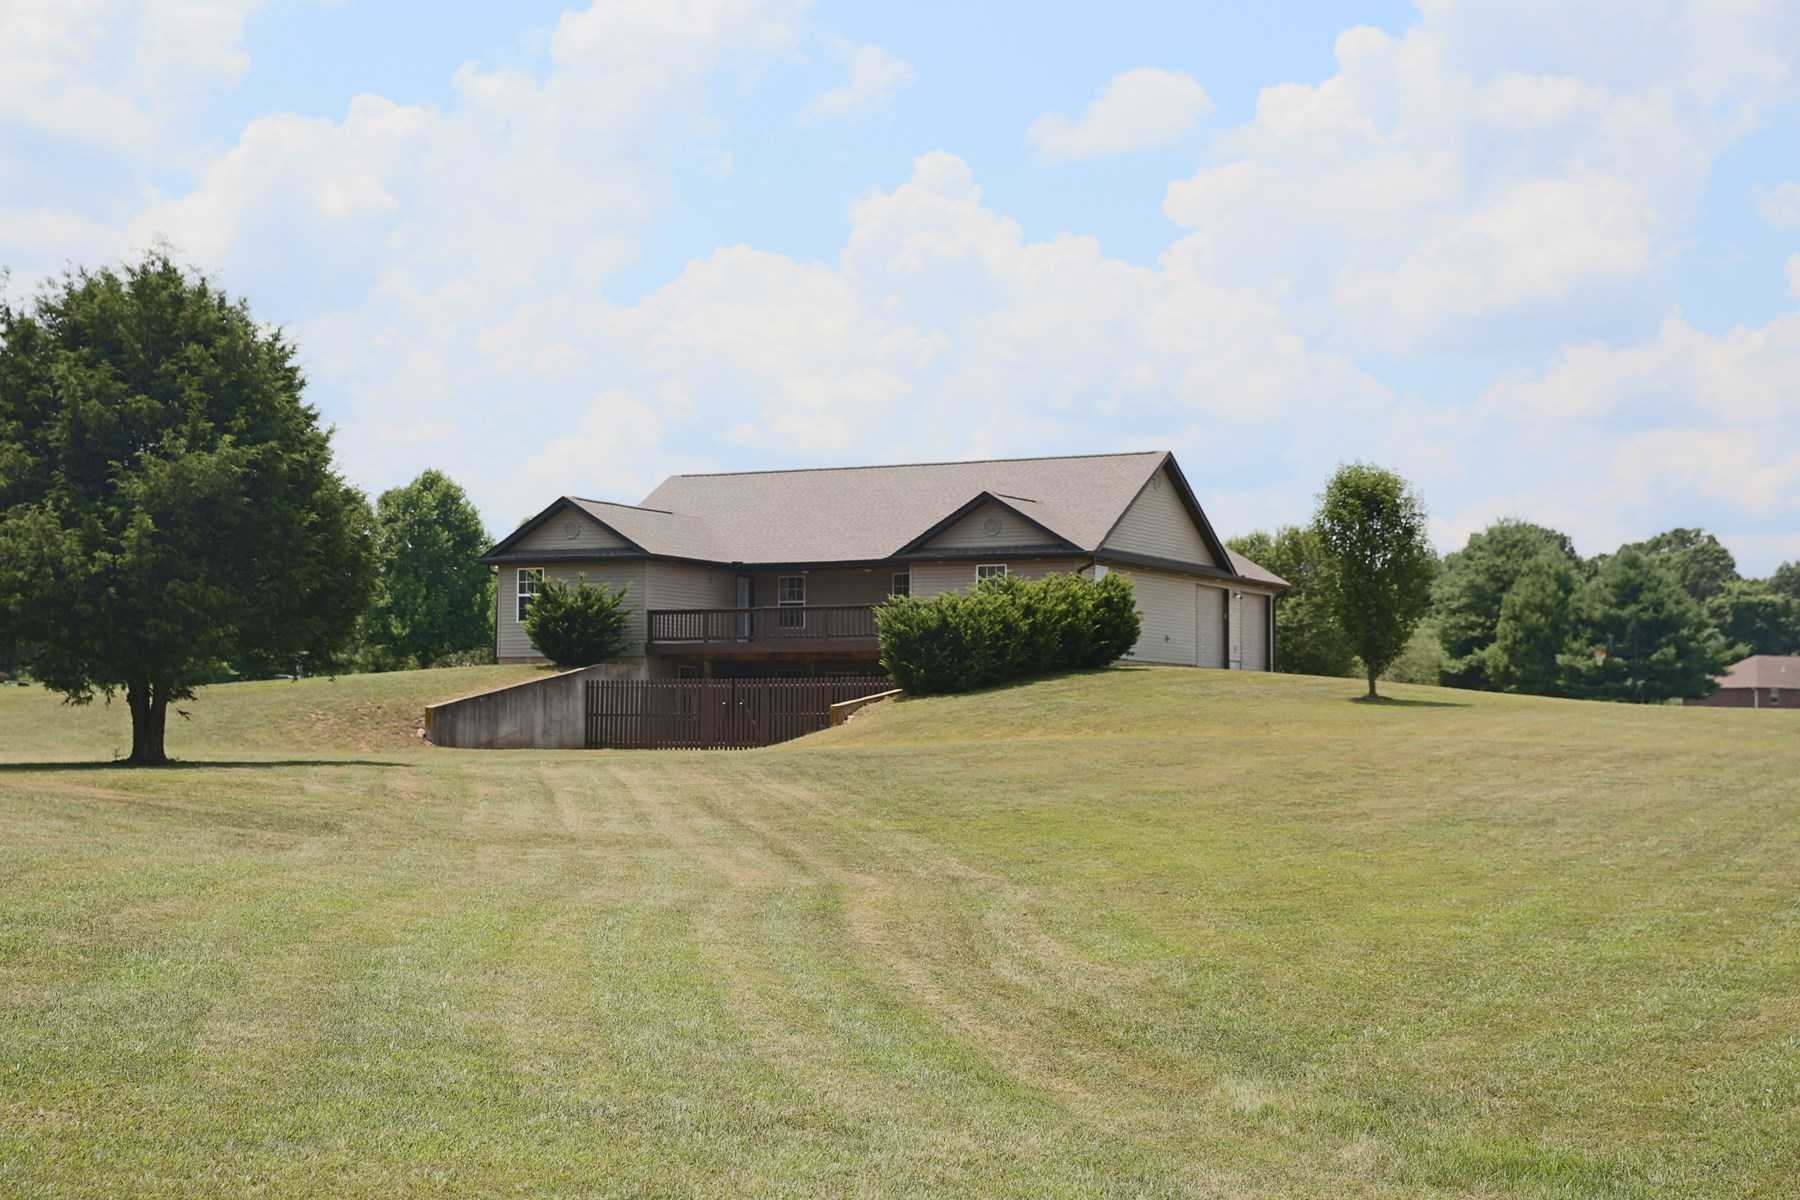 Large Family Home on 3.16 acres in West Plains, MO